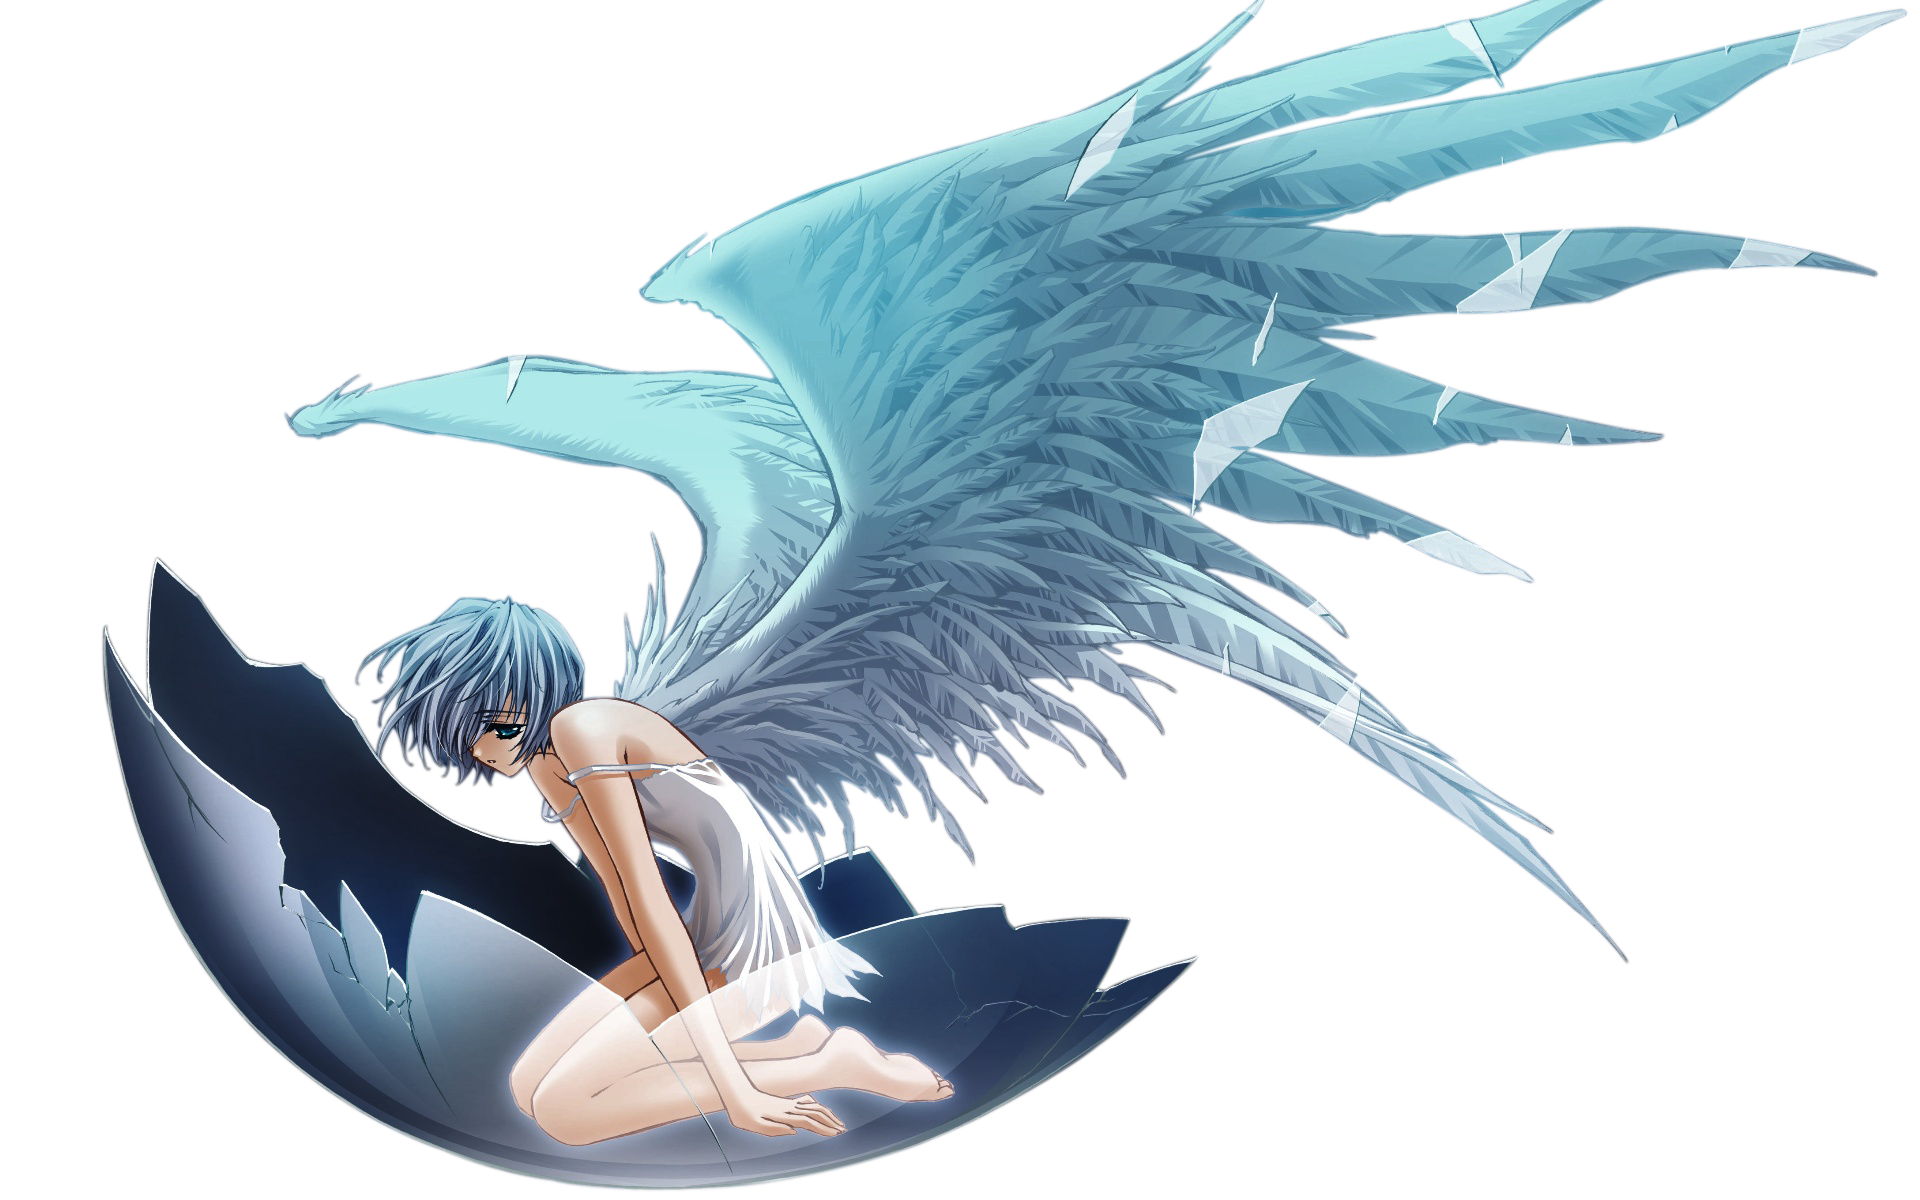 Sad angel png. Animes bg com evangelion